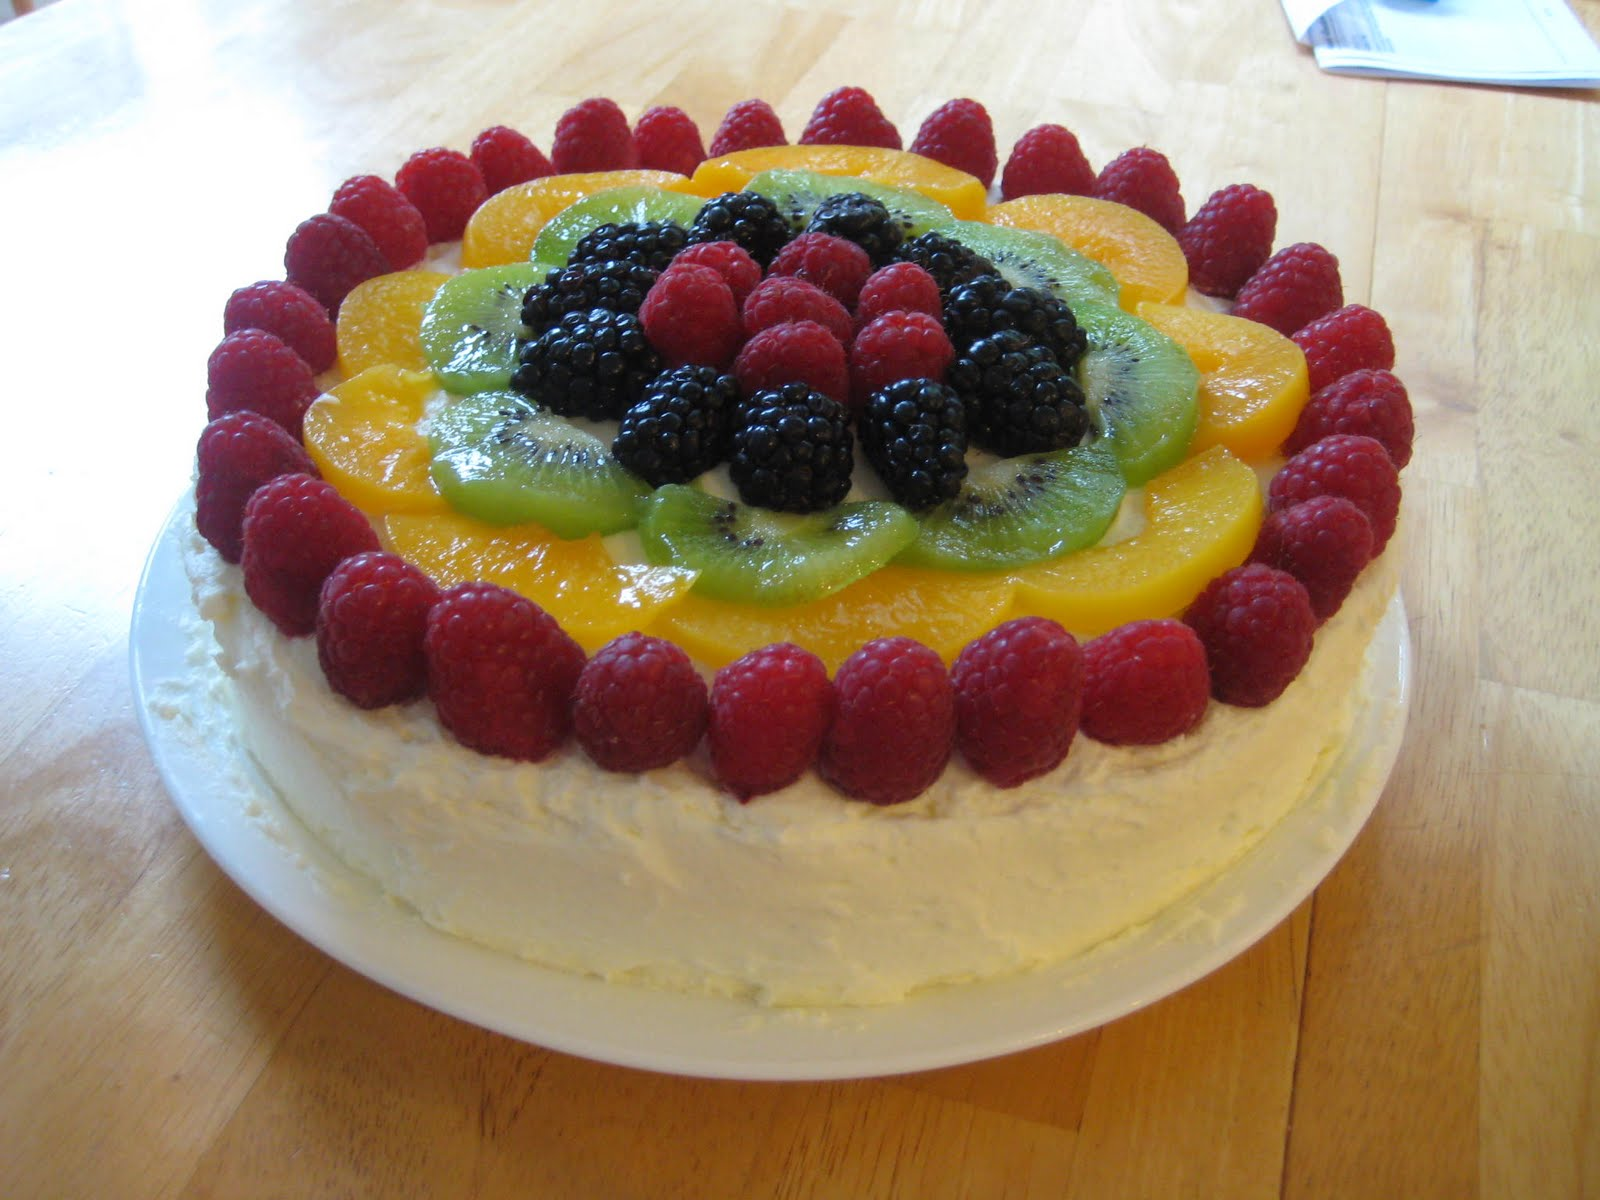 Cake With Fruits On Top : Gim s Delish Delights: Berry Fruit Cake